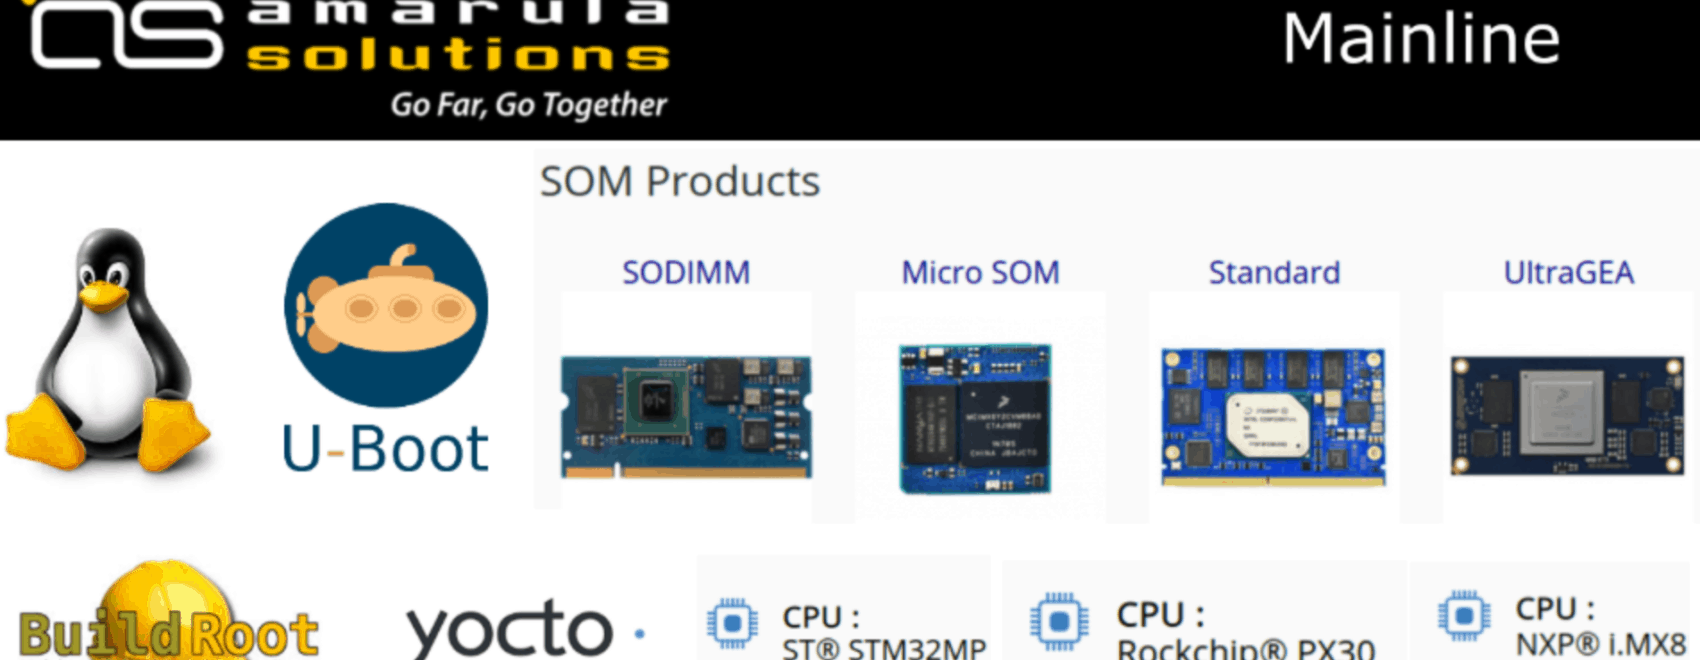 Amarula solutions. Go far, go together. Mainline Project: Linux, U-Boot, BuildRoot, Yocto. SOM products: SODIMM, Miceo SOM, Utra GEA, CPU ST STM32MP, CPU ROCKCHIP PX30, CPU NXP i.MX8.